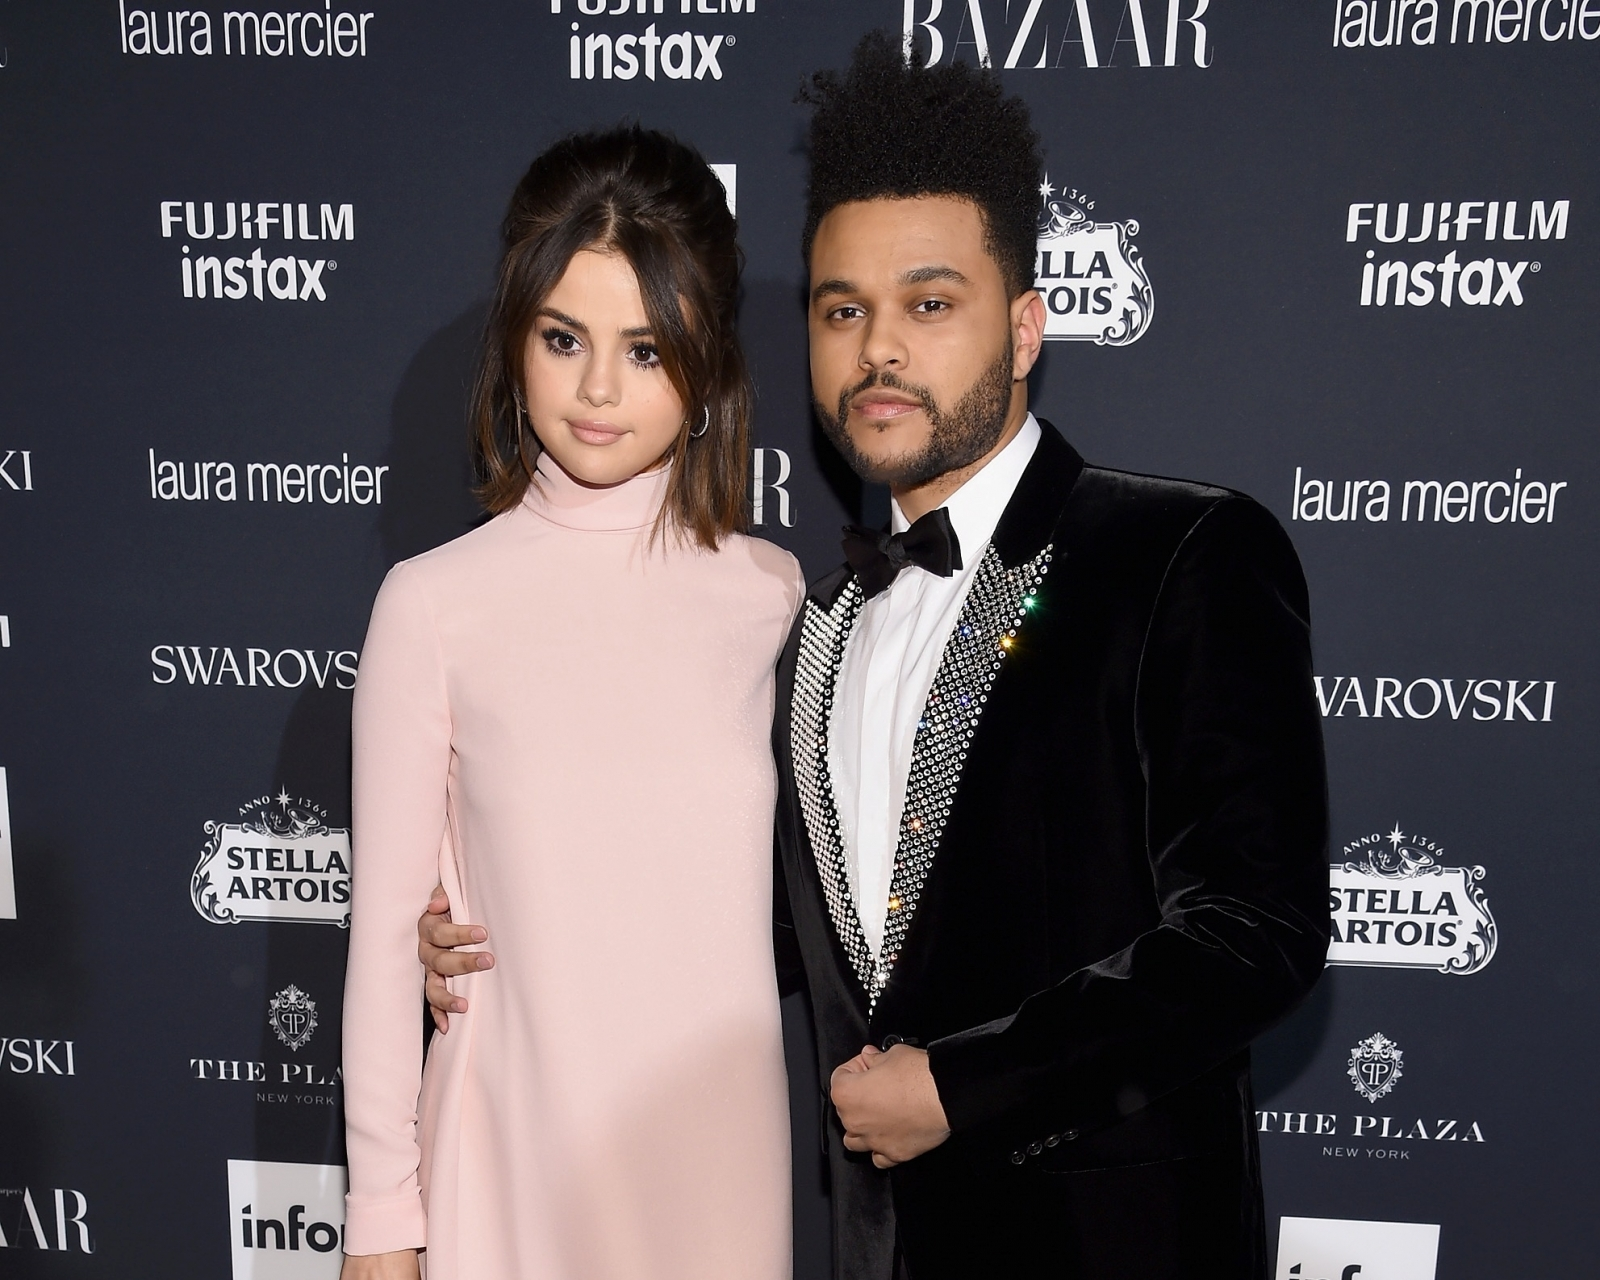 Selena Gomez spotted kissing co-star on set of Woody Allen movie: Is The Weeknd jealous?